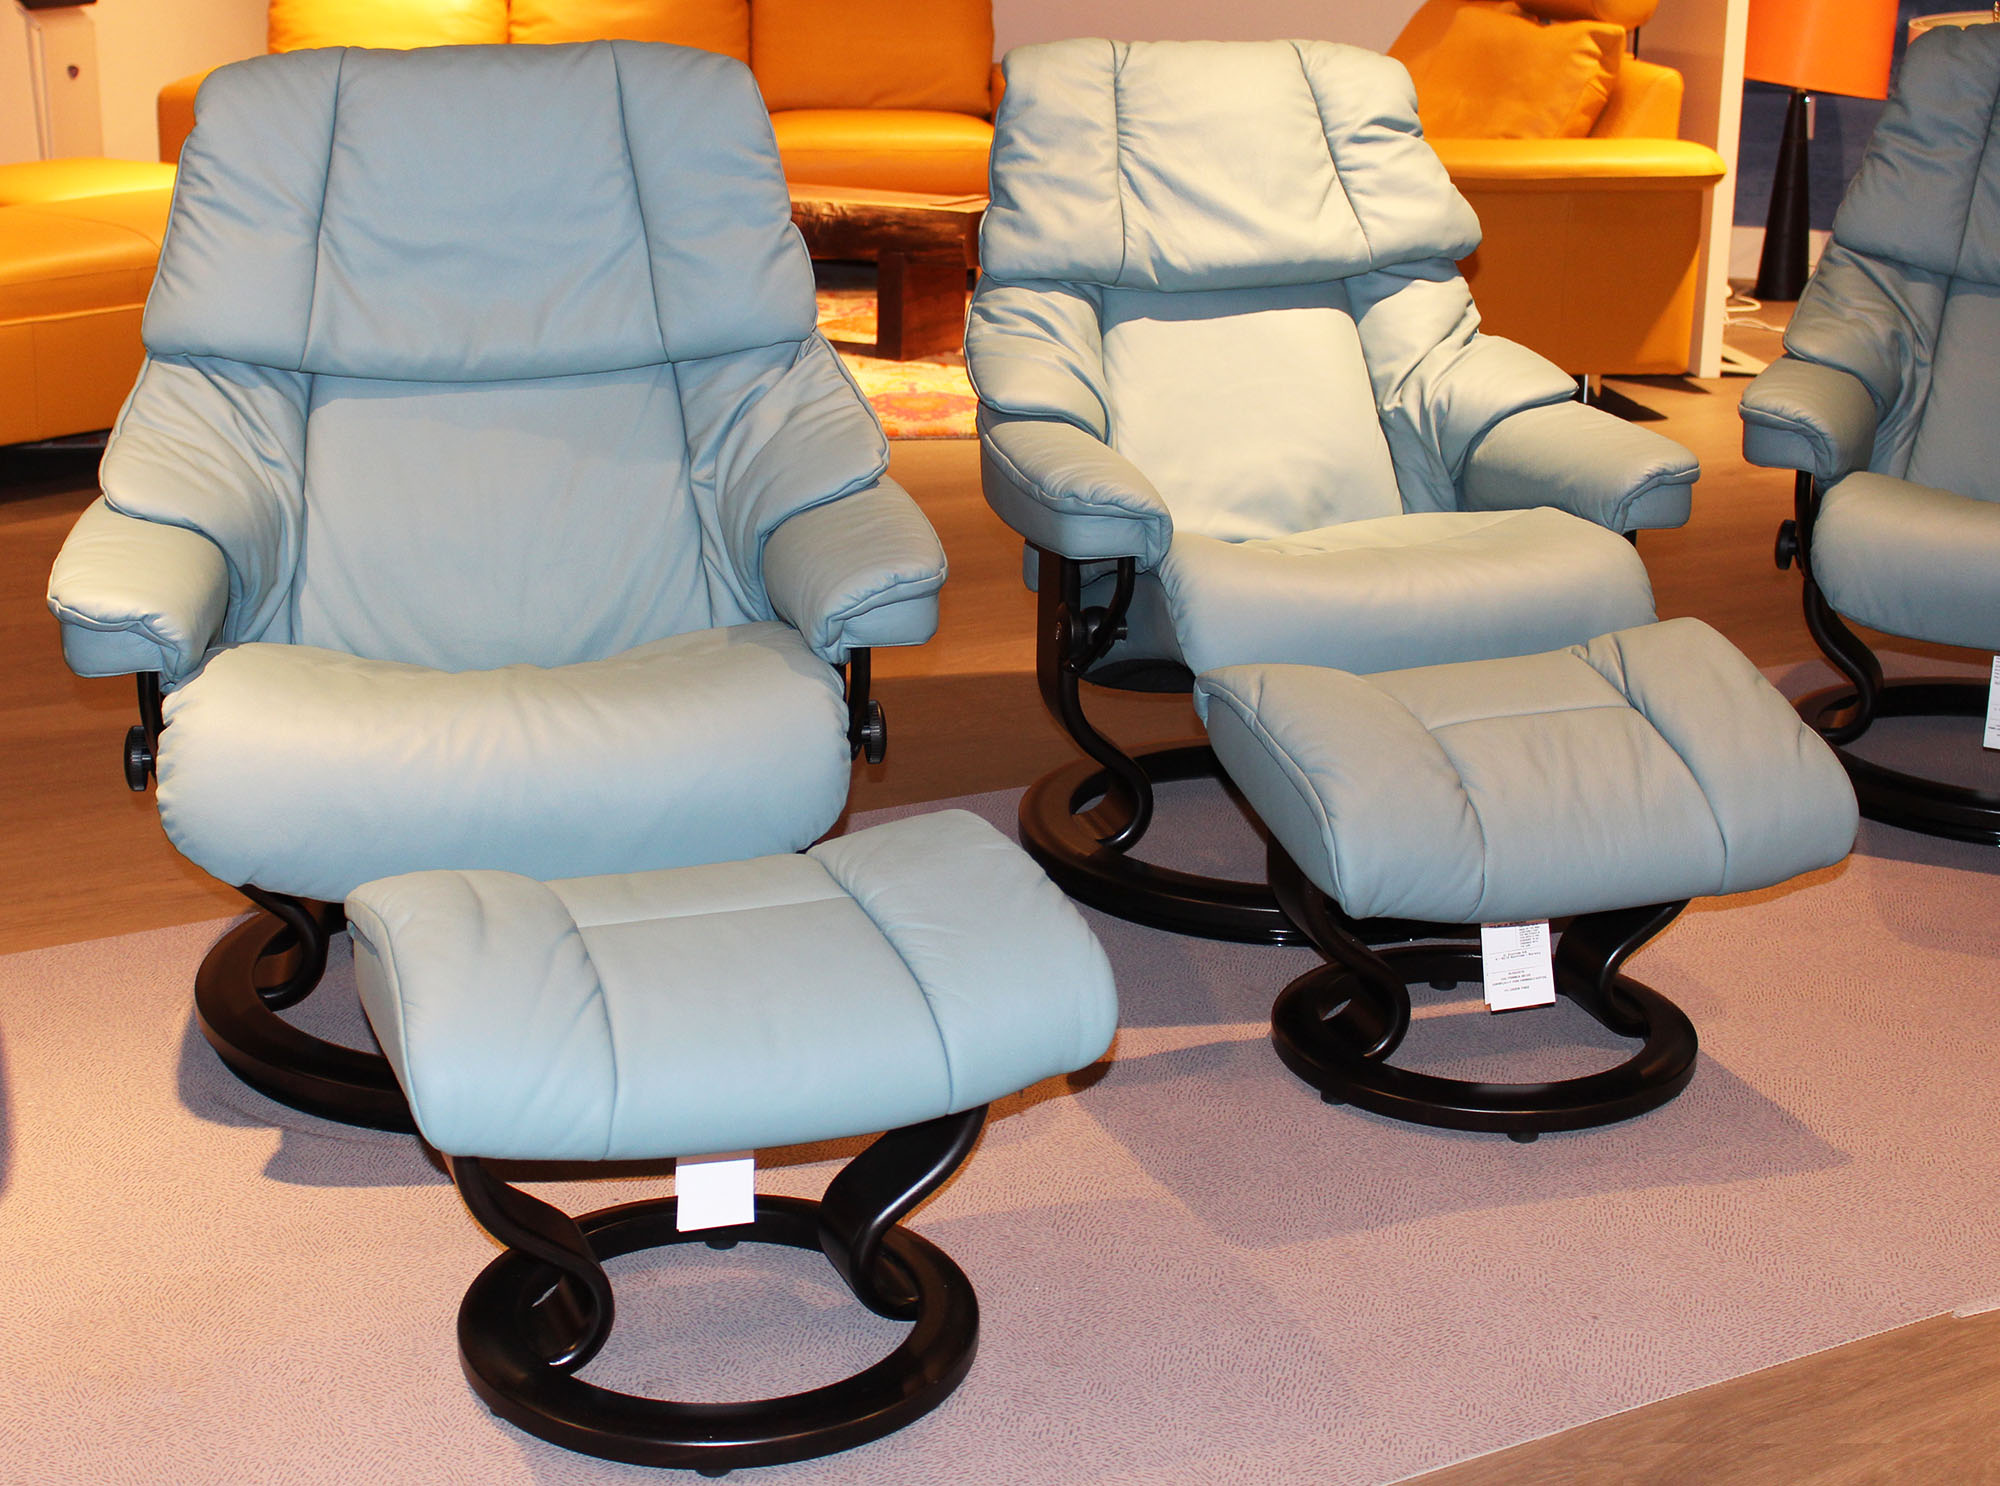 Ekornes chairs for sale stressless paloma indigo leather by ekornes - Stressless Paloma Aqua Green Leather Color From Ekornes